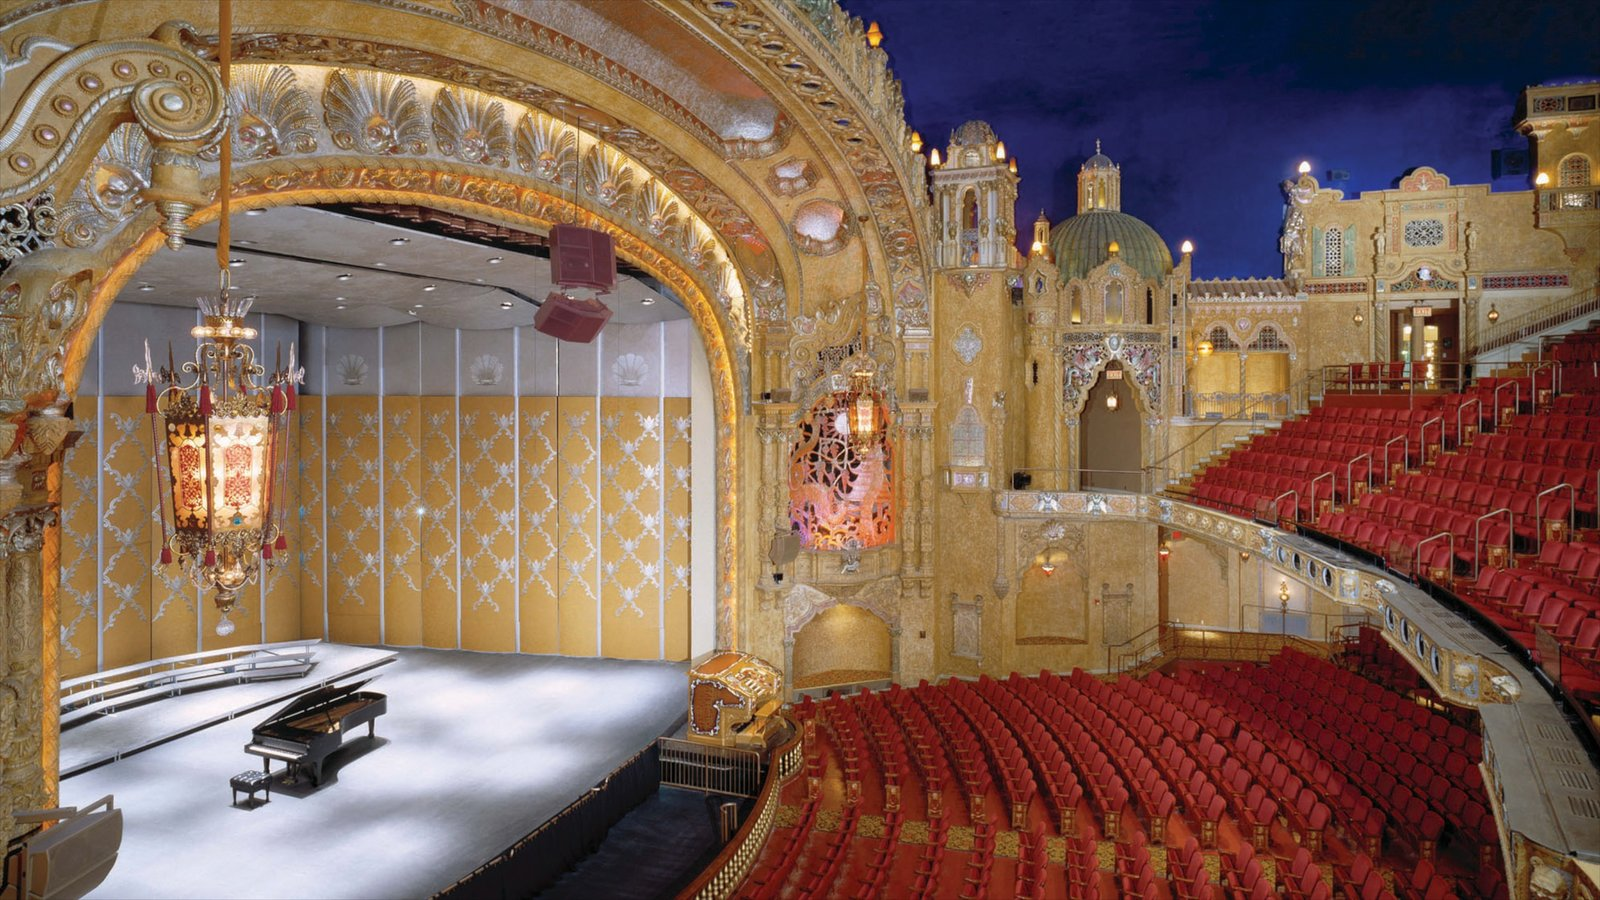 Rockford which includes theater scenes, heritage elements and interior views